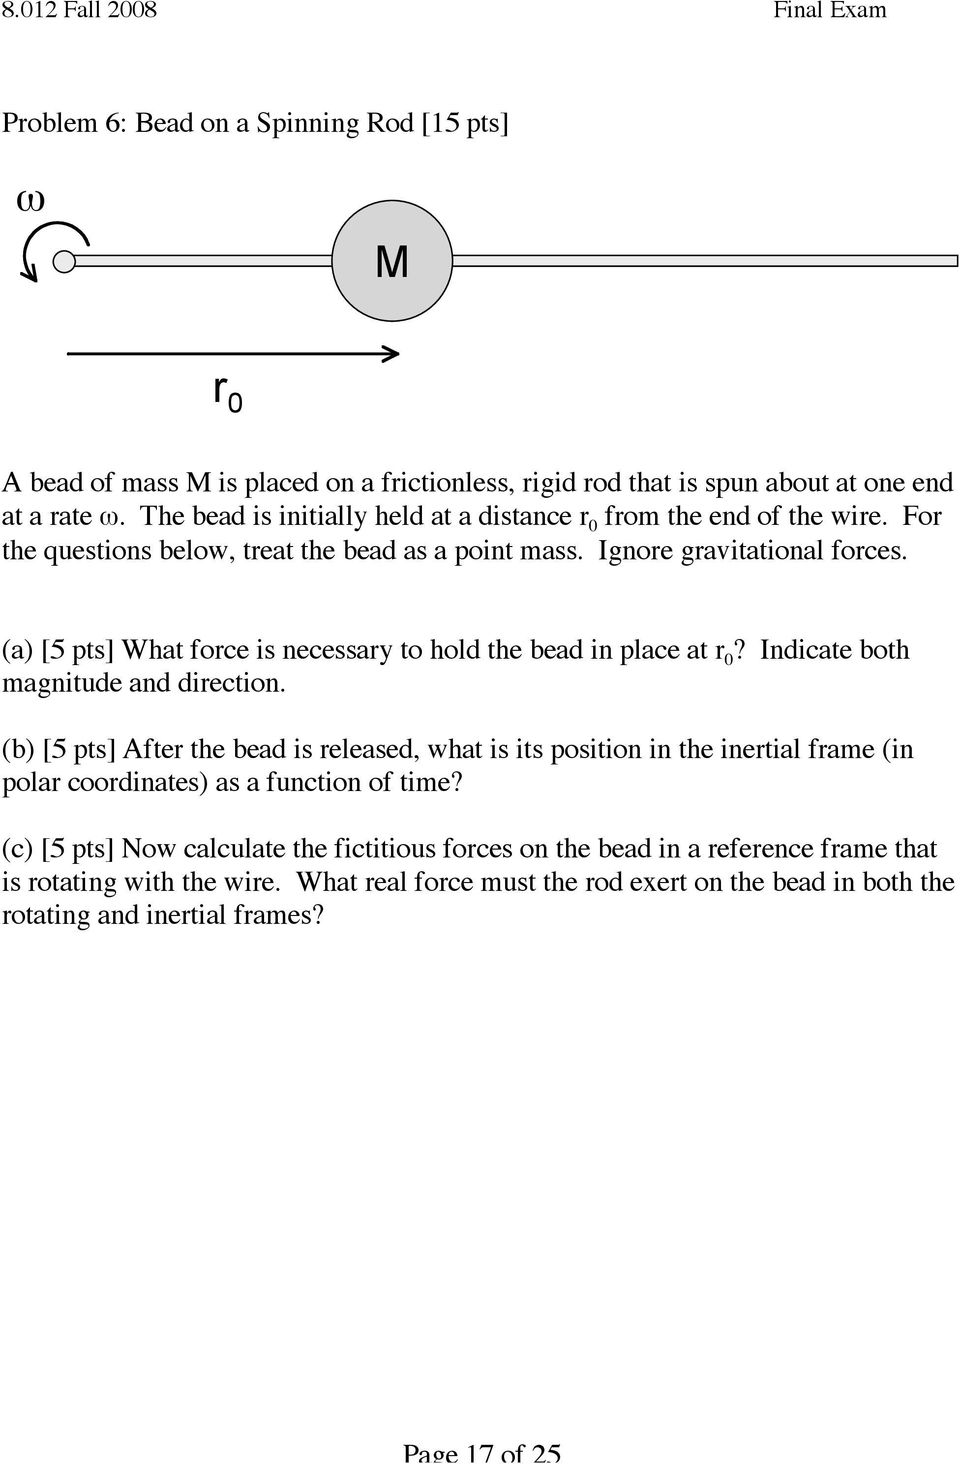 (a) [5 pts] What force is necessary to hold the bead in place at r 0? Indicate both magnitude and direction.